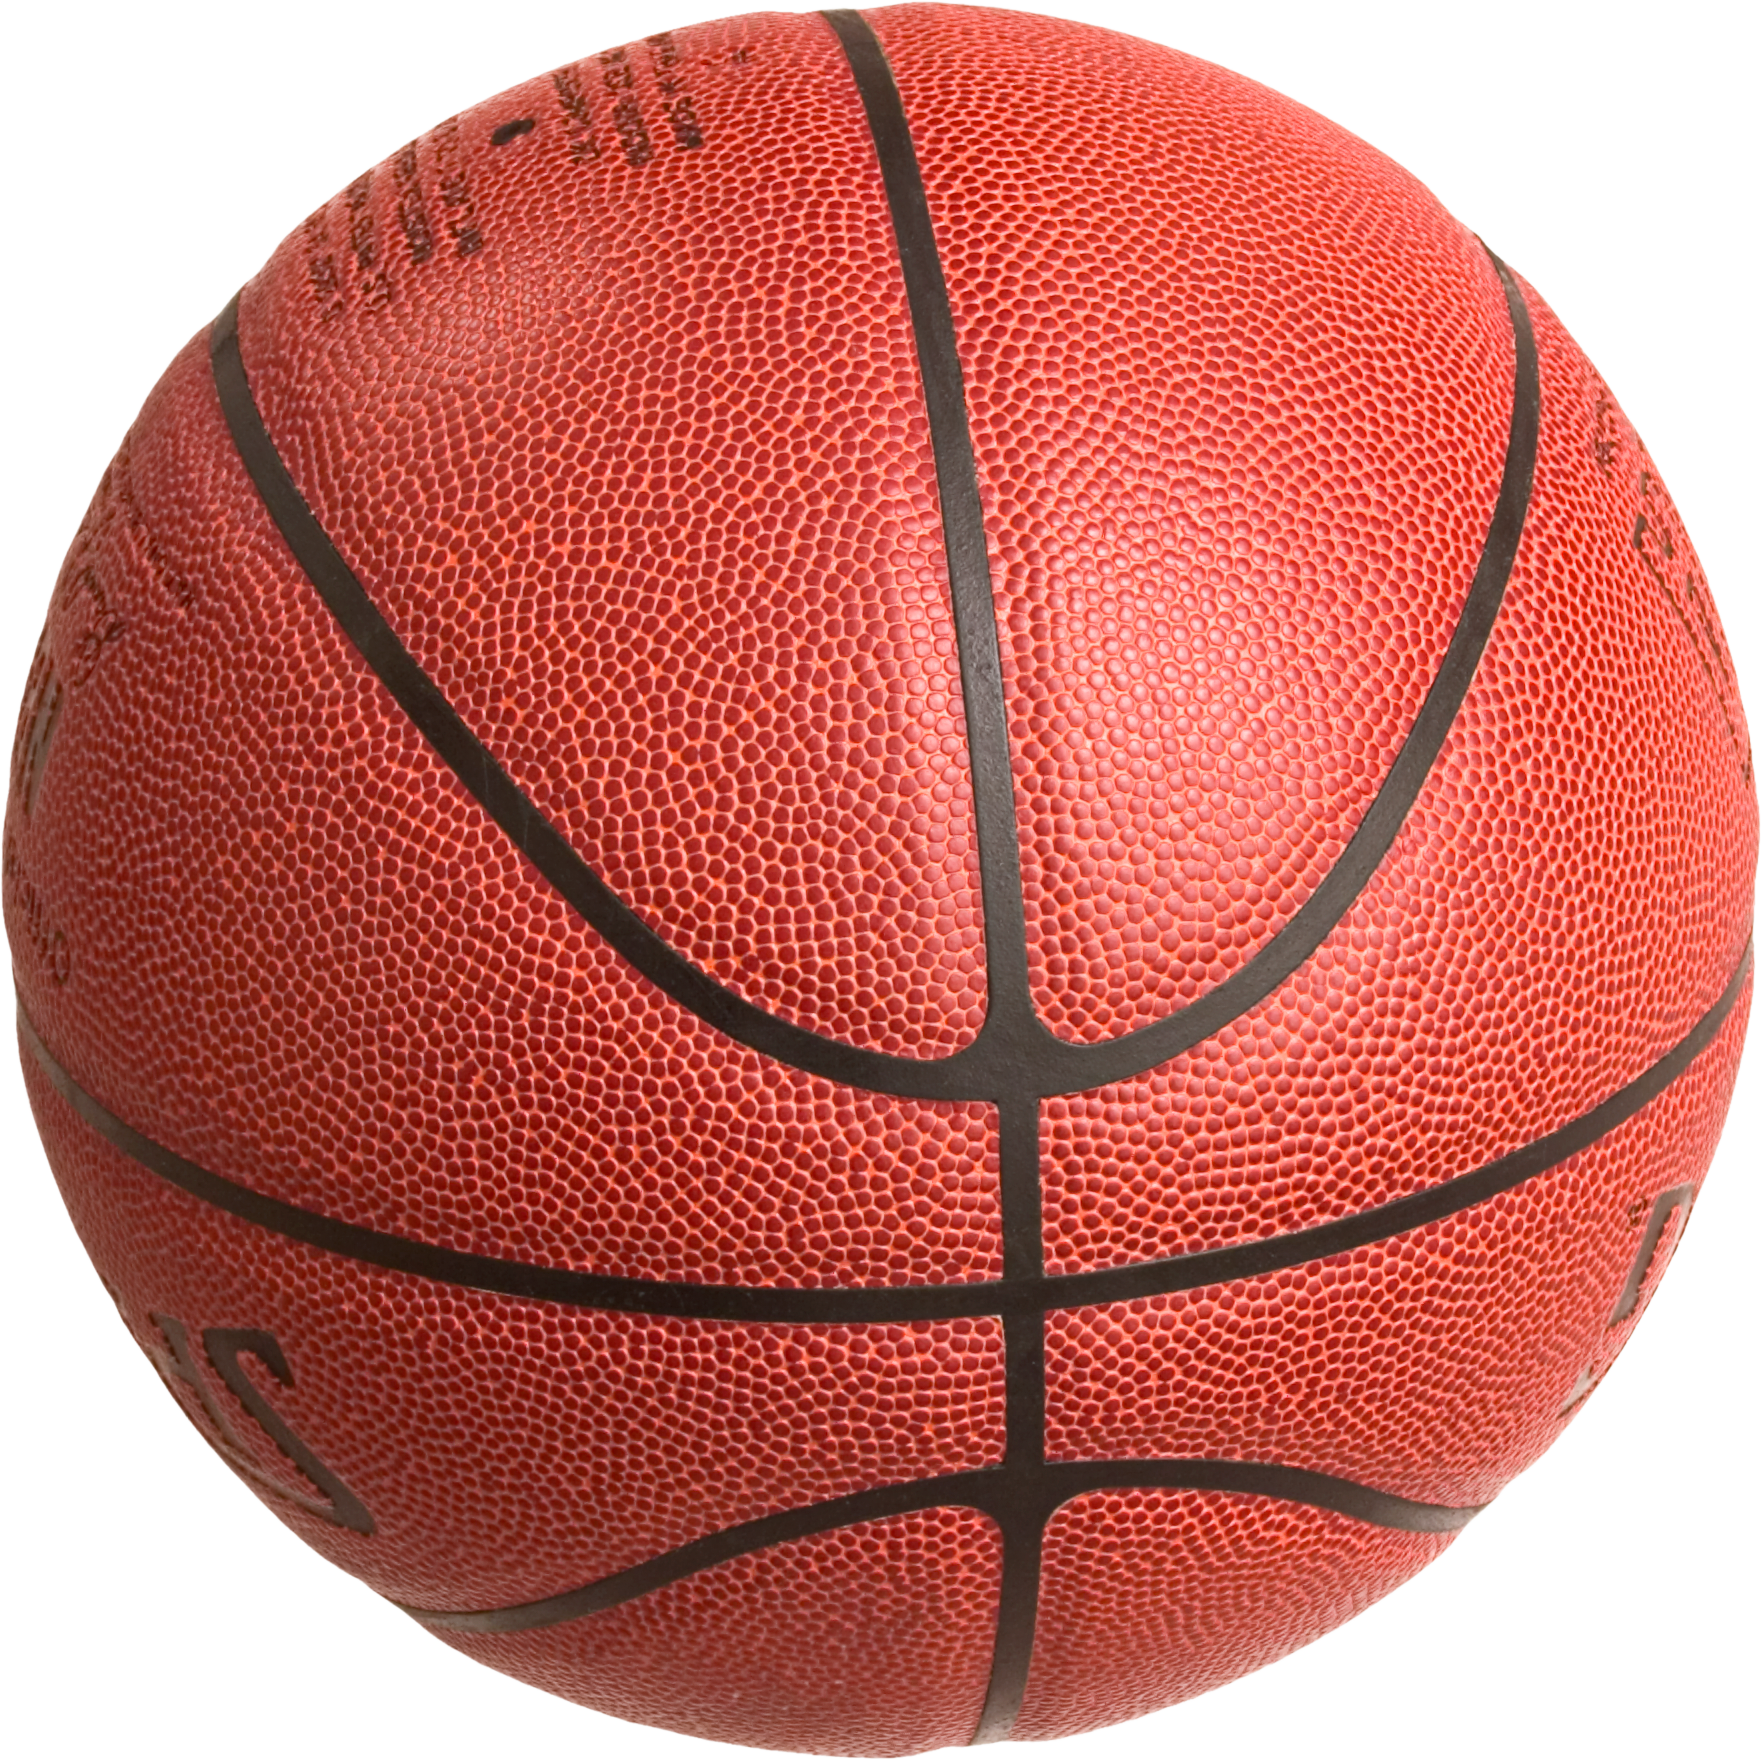 Free Clipart Basketball Best Images image #26238